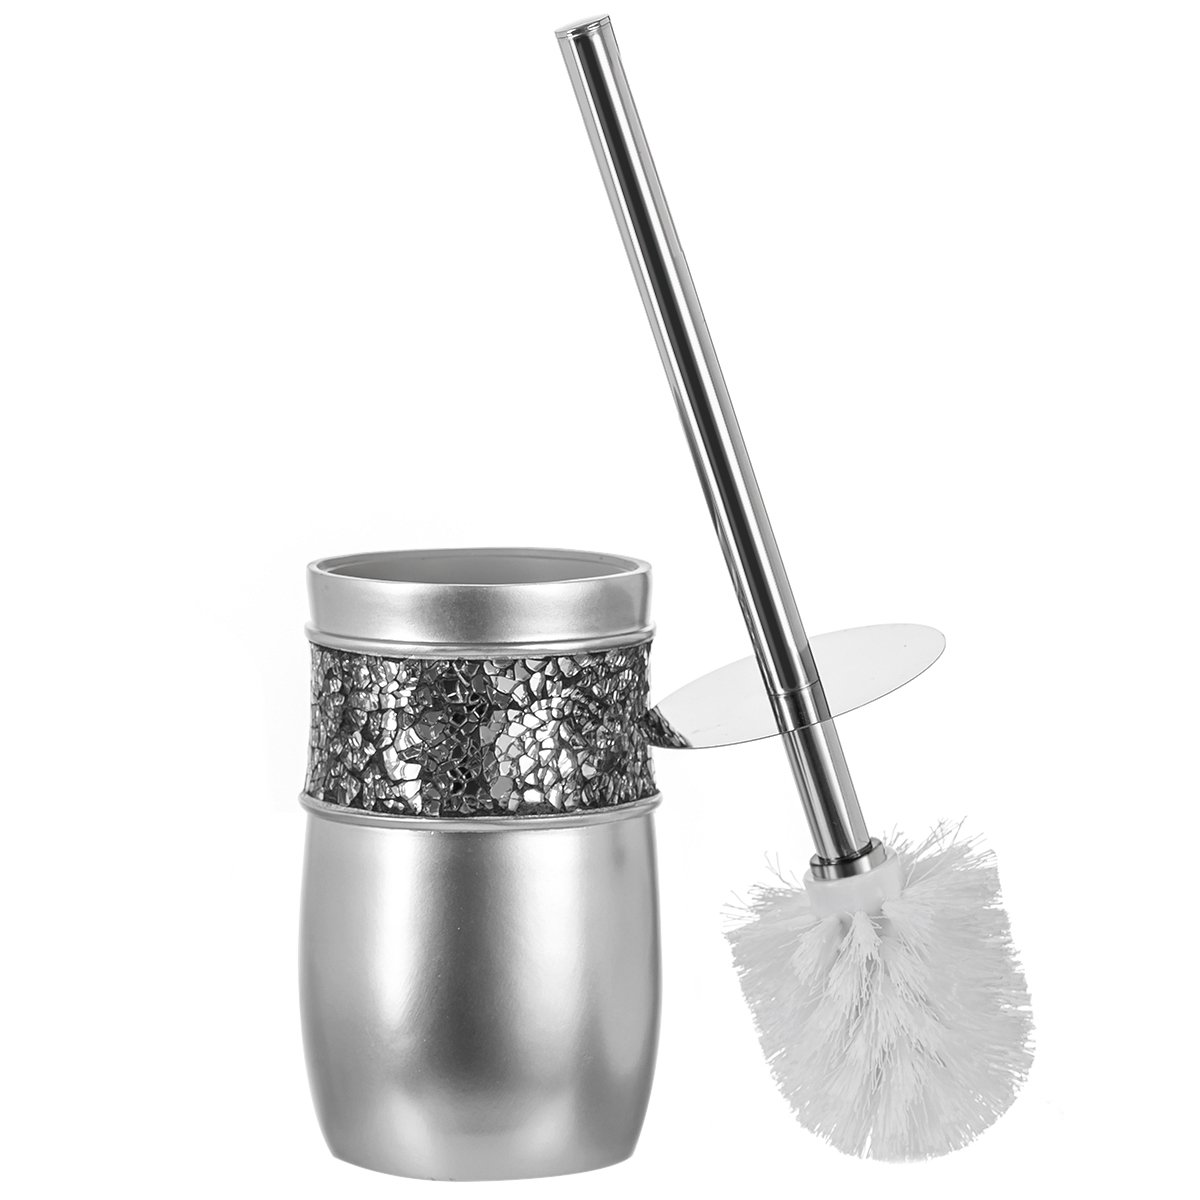 Creative Scents Bathroom Toilet Brush Set - Resin Toilet Bowl Cleaner Brush and Holder, Good Grip Decorative Design Compact Bowl Scrubber (Silver) by Creative Scents